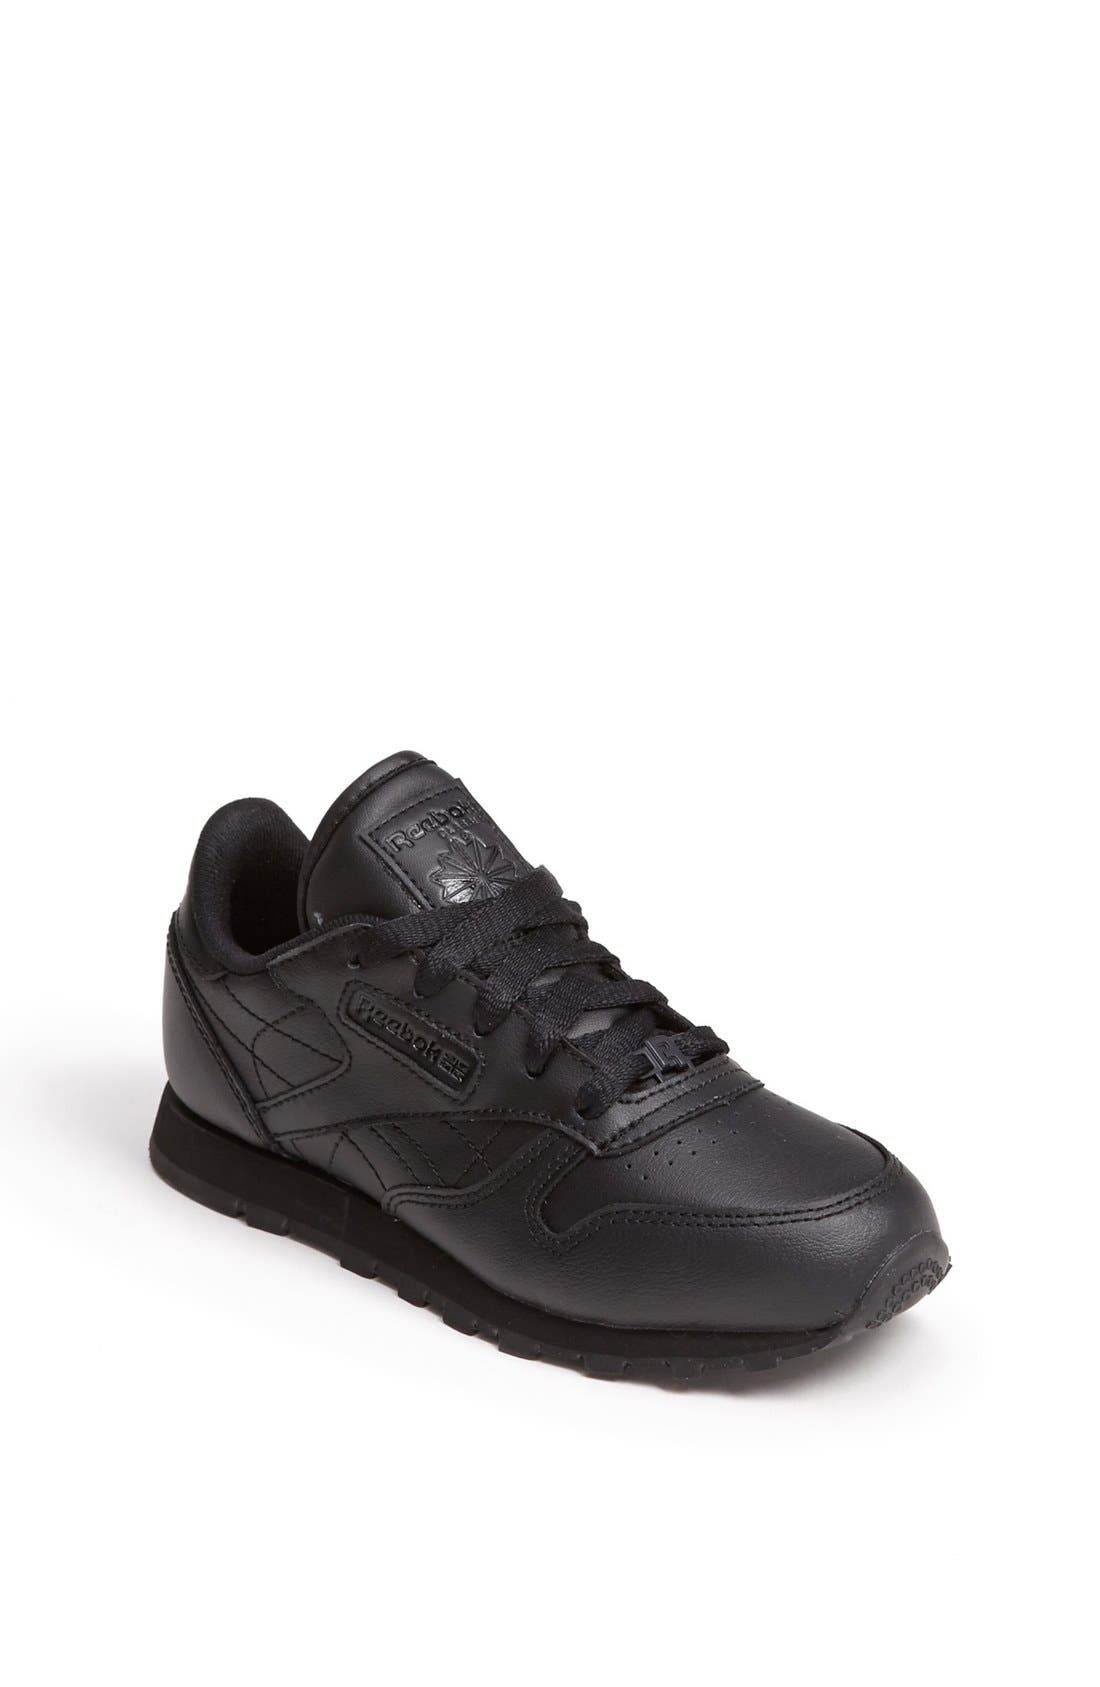 Alternate Image 1 Selected - Reebok 'Classic' Leather Sneaker (Toddler & Little Kid)